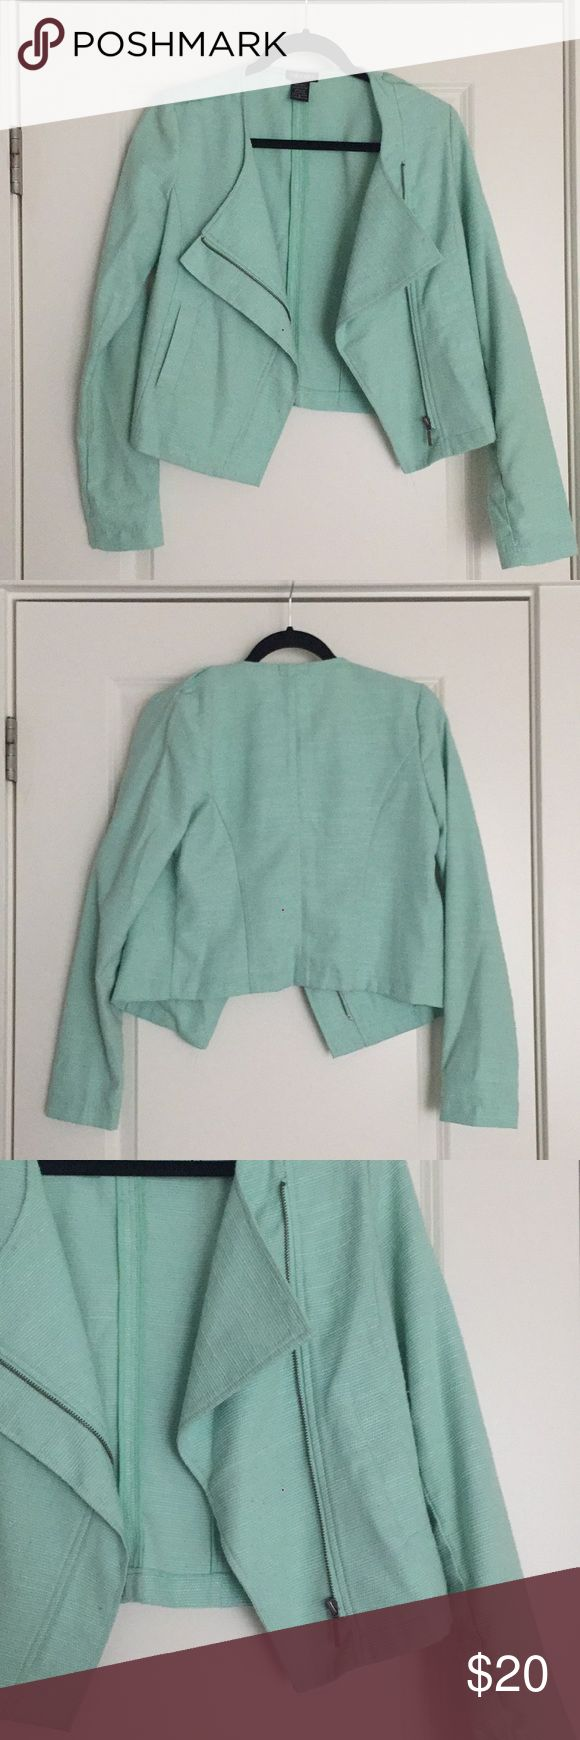 Mint Blazer This lightly worn mint blazer is great to thrown on over dresses or to pair with some jeans! Perfect statement jacket! Jackets & Coats Blazers